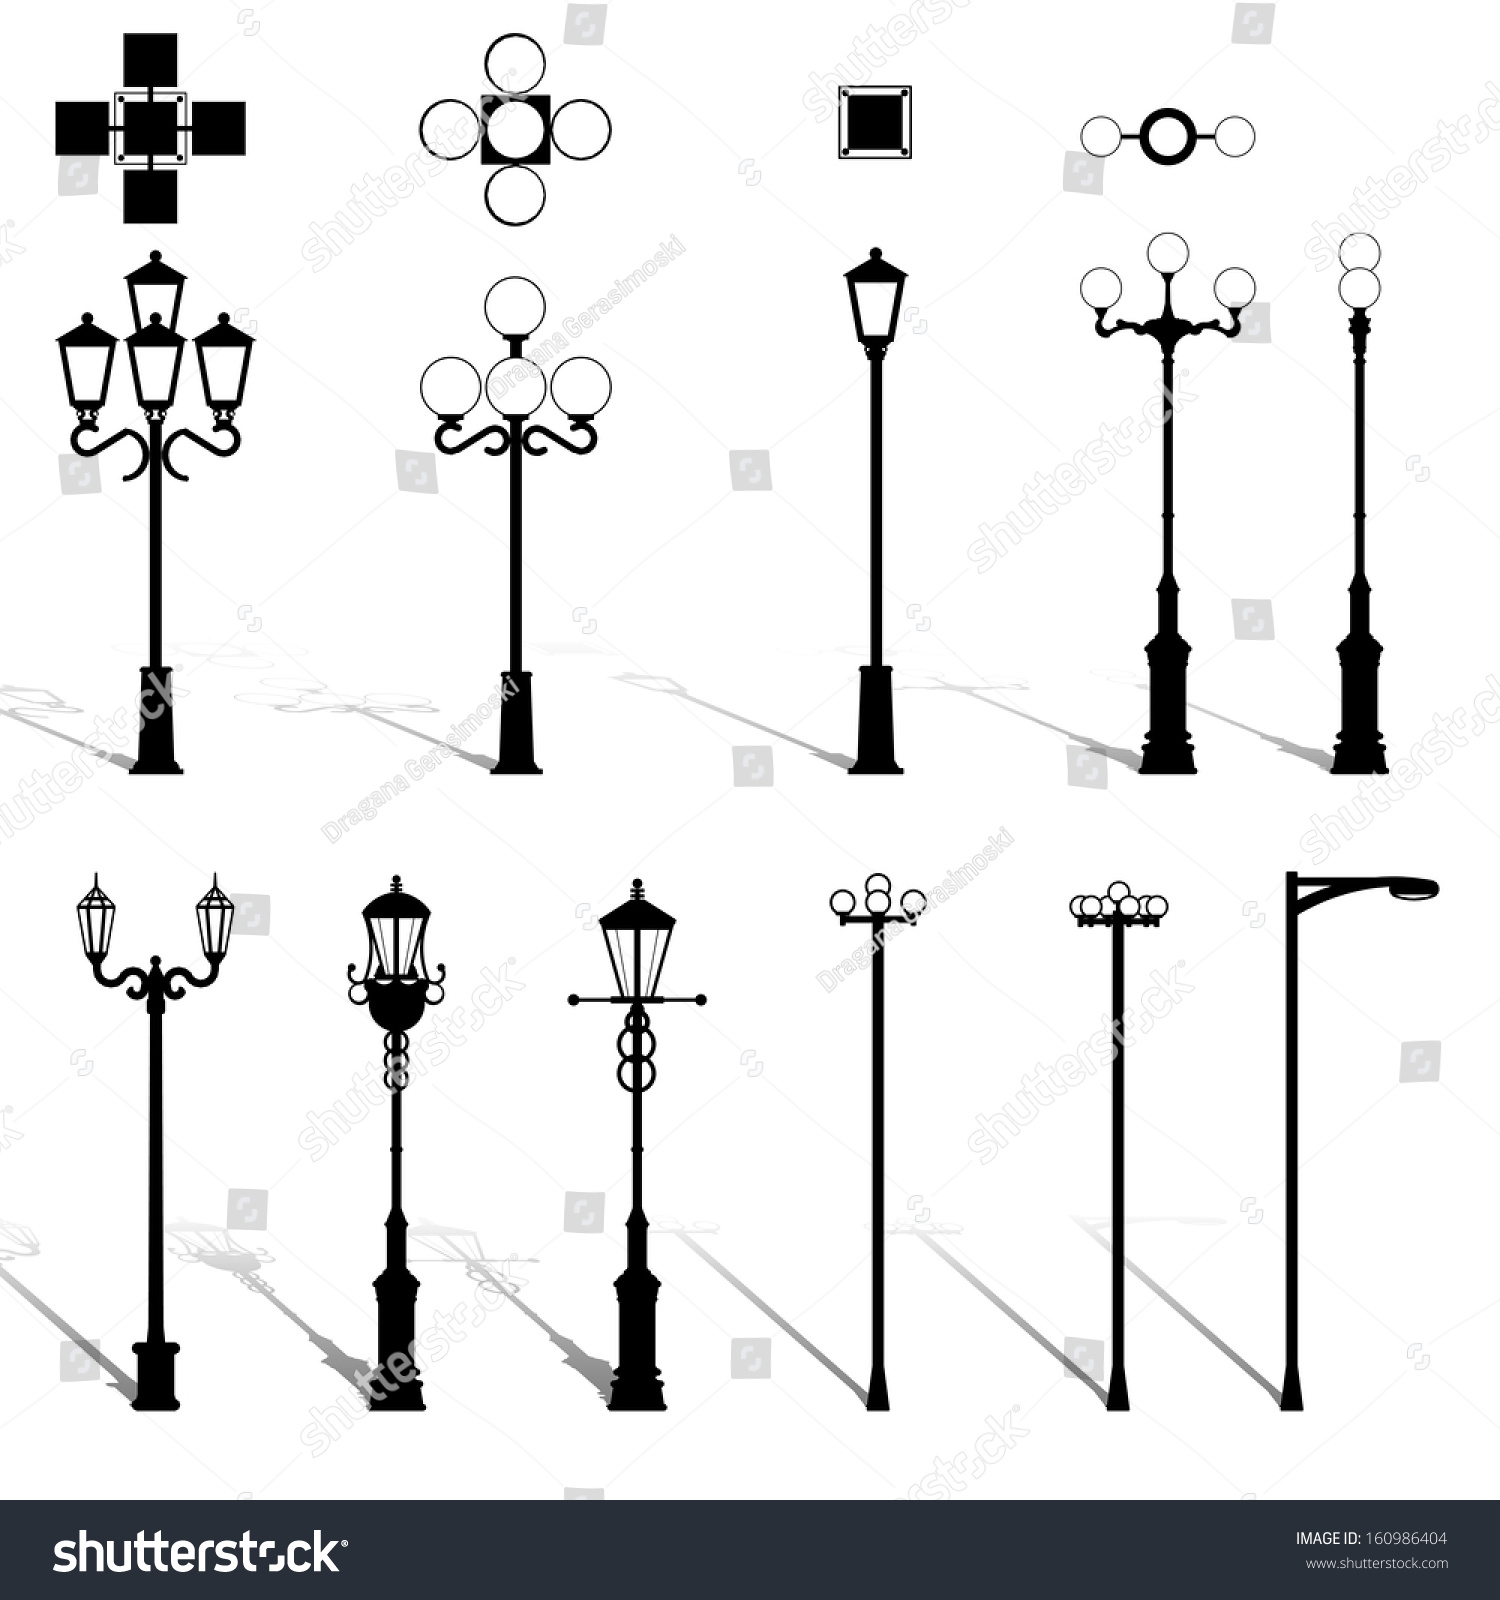 Light Pole Design: Modern Lightning Outdoor Lamp Pole Lamps Stock